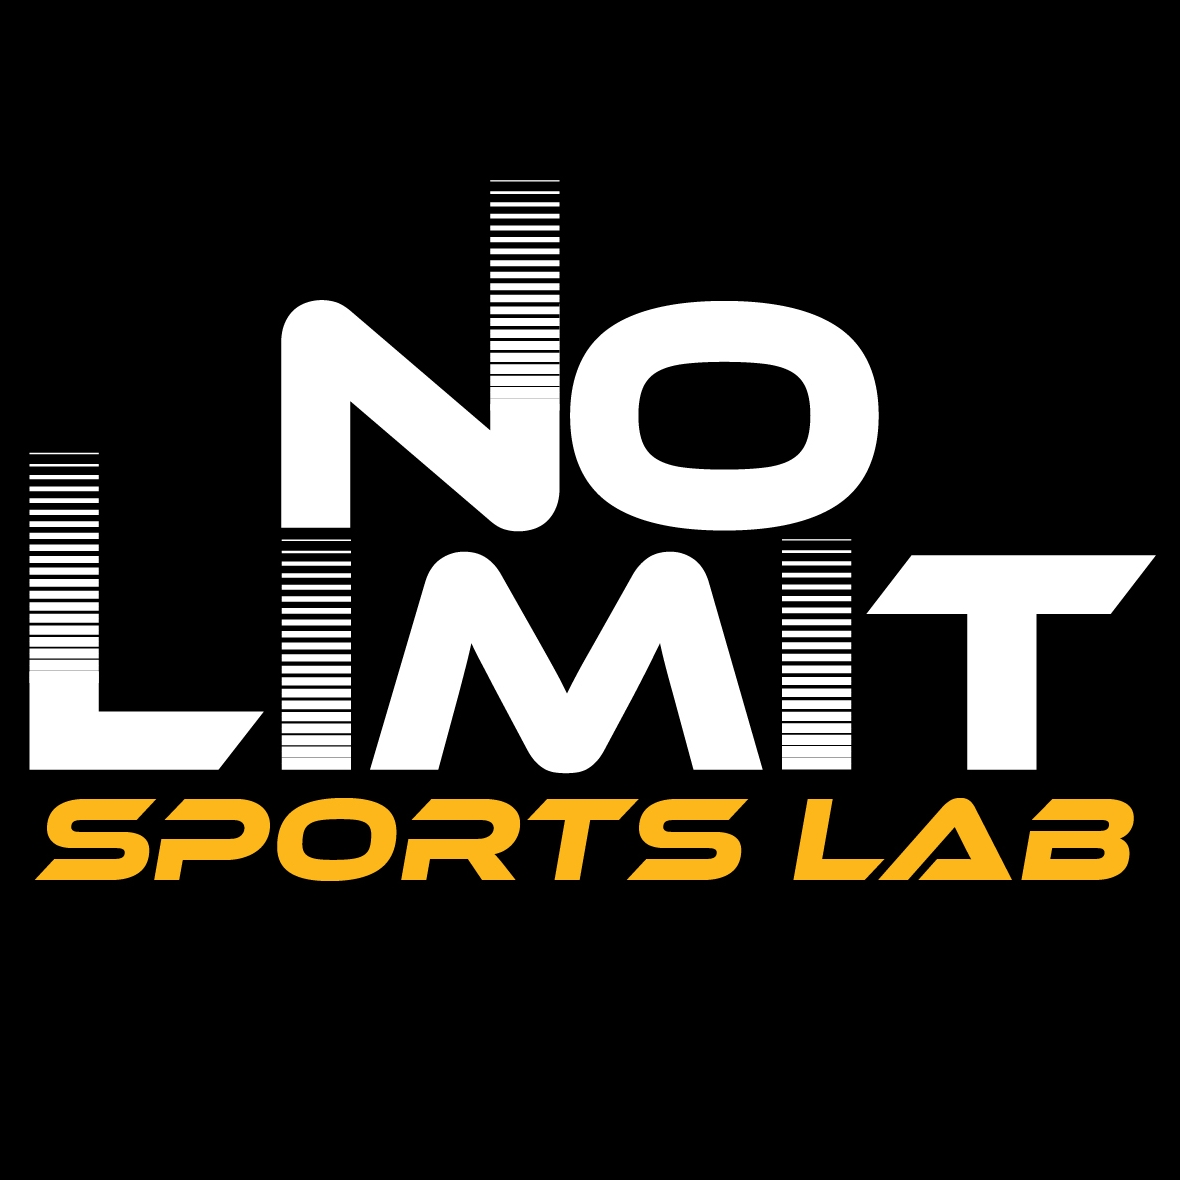 No Limit Sports Lab